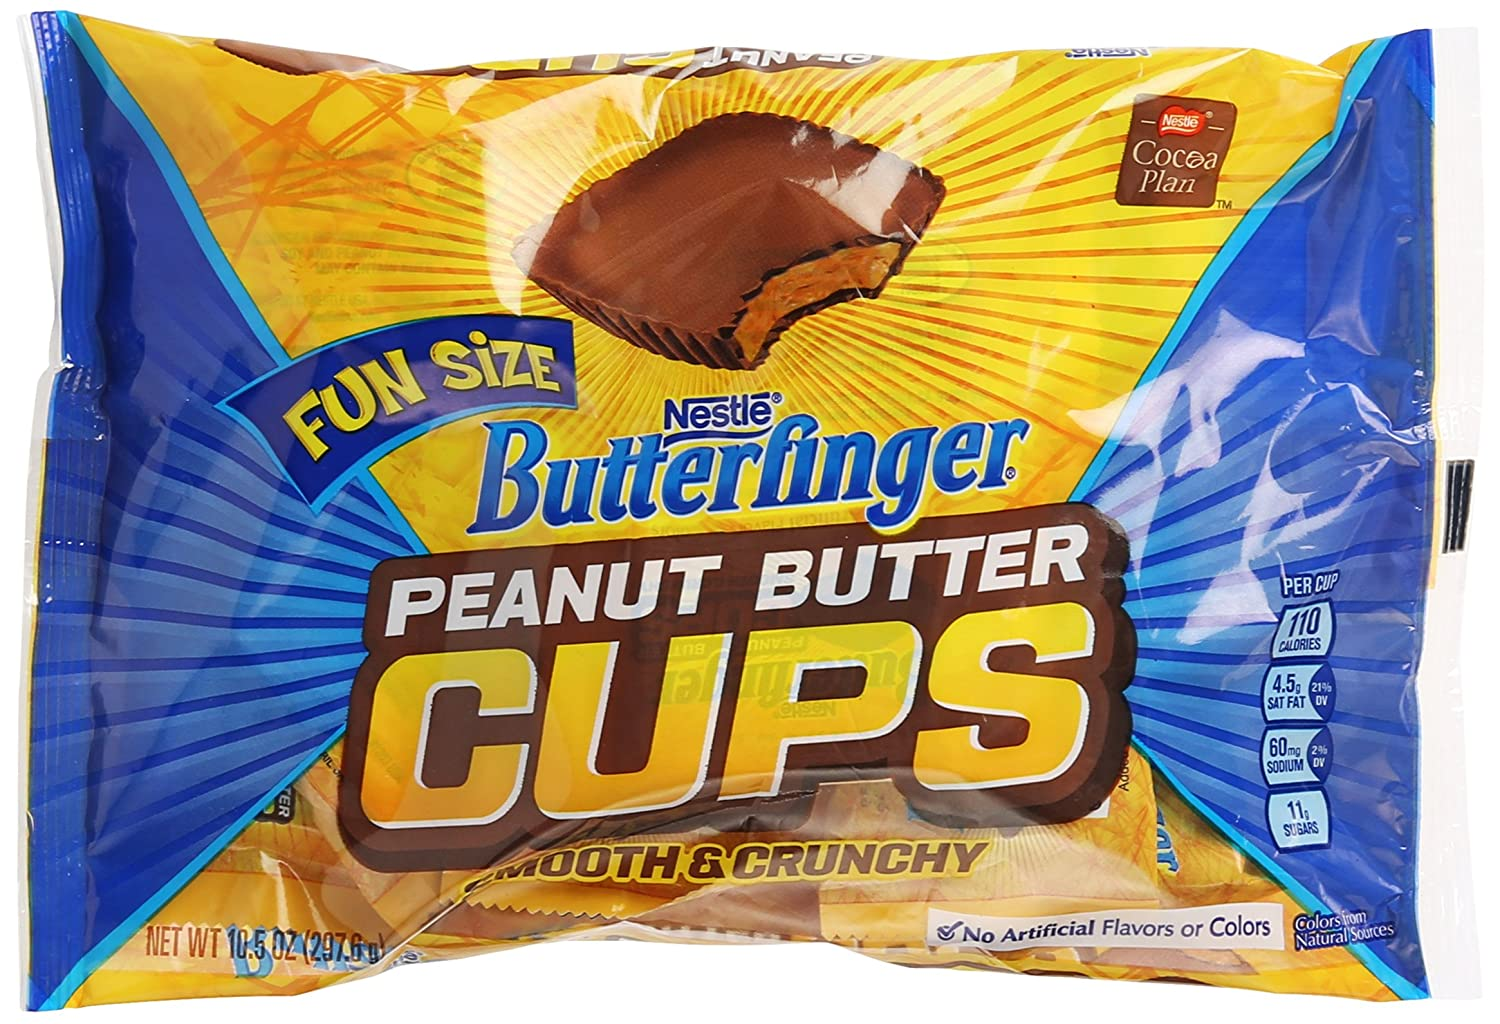 Amazon.com : erFinger Peanut er Cups Smooth And Crunchy ... on planters peanuts gifts, planters nuts products, planters mixed nuts, planters brittle nut medley, planters penuts, planters redskin peanuts, planters nuts and chocolate, planters big nut bar, planters brittle bar, planters cocktail peanuts, honey bar, planters honey roasted peanuts, planters dry roasted peanuts 6 oz, planters chipotle peanuts, planters salted caramel nut bar, planters nutmobile, planters candy, planters spanish peanuts, planters peanuts holiday pack, planters chocolate filled peanuts,